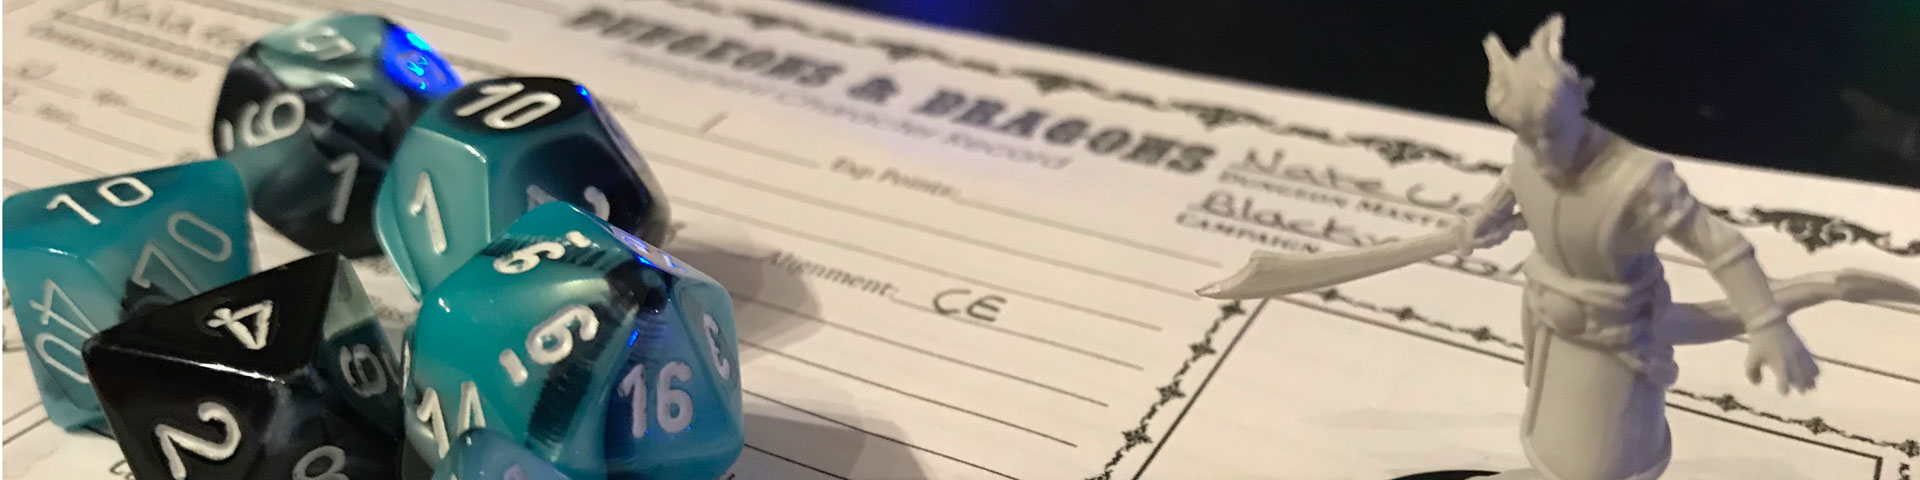 A close up view of blue/black dice and a tiefling warlock. In the background is an old-school style character sheet.